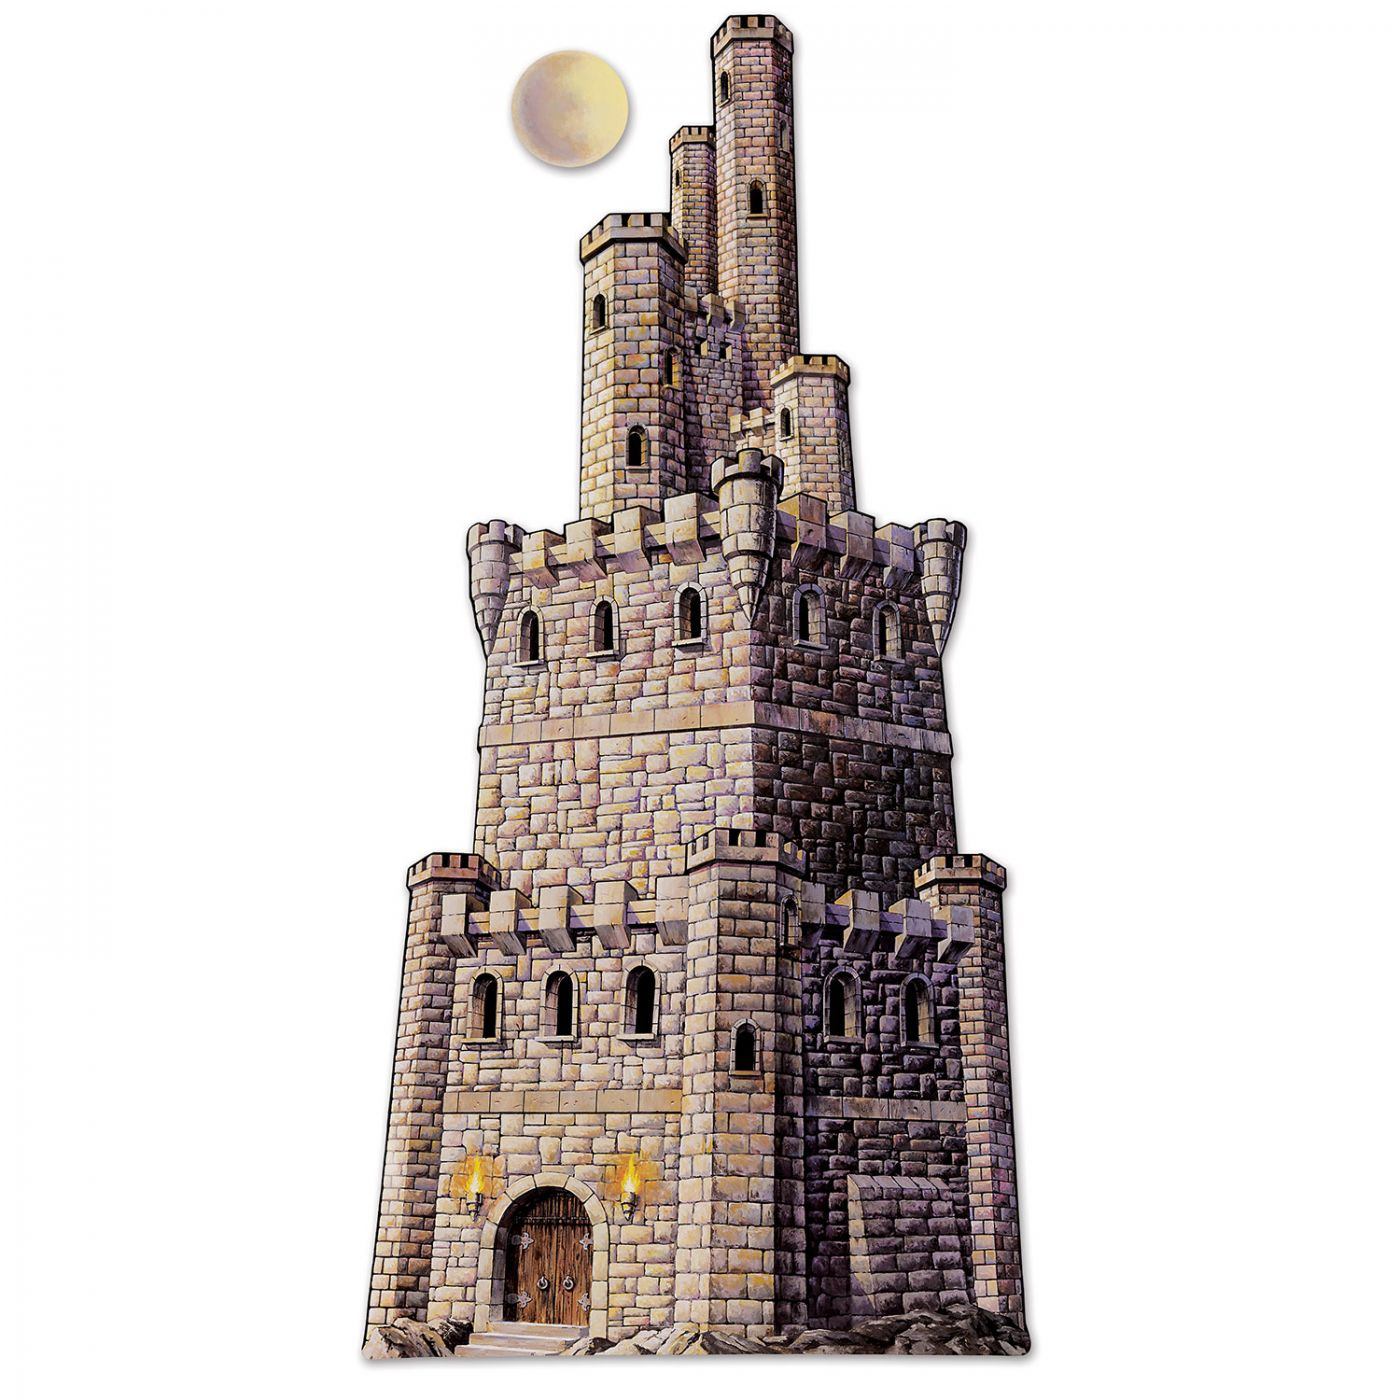 Jointed Castle Tower image